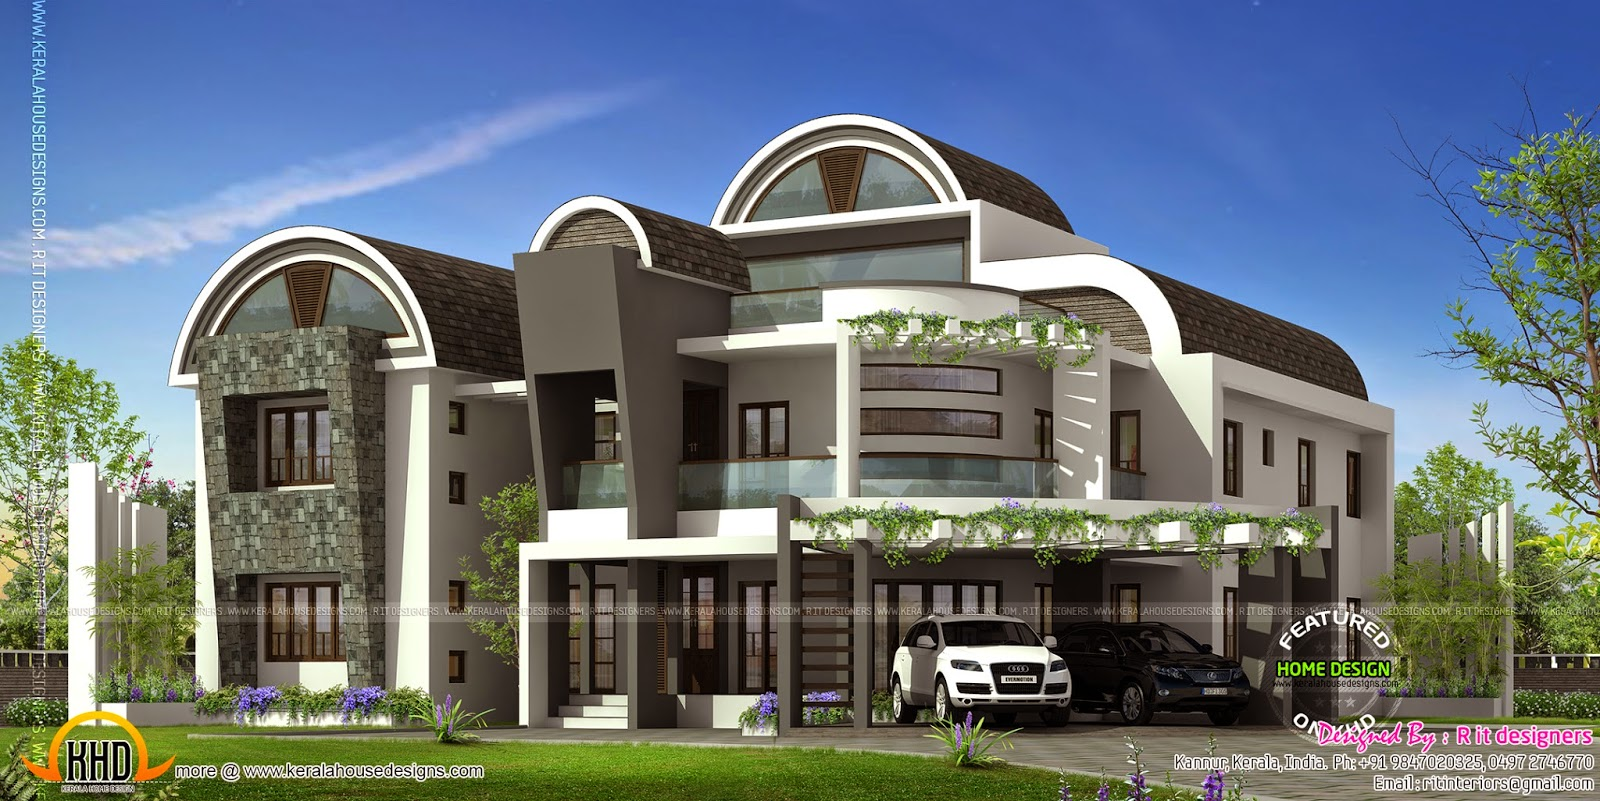 Ultra modern house kerala home design and floor plans for Super modern house design